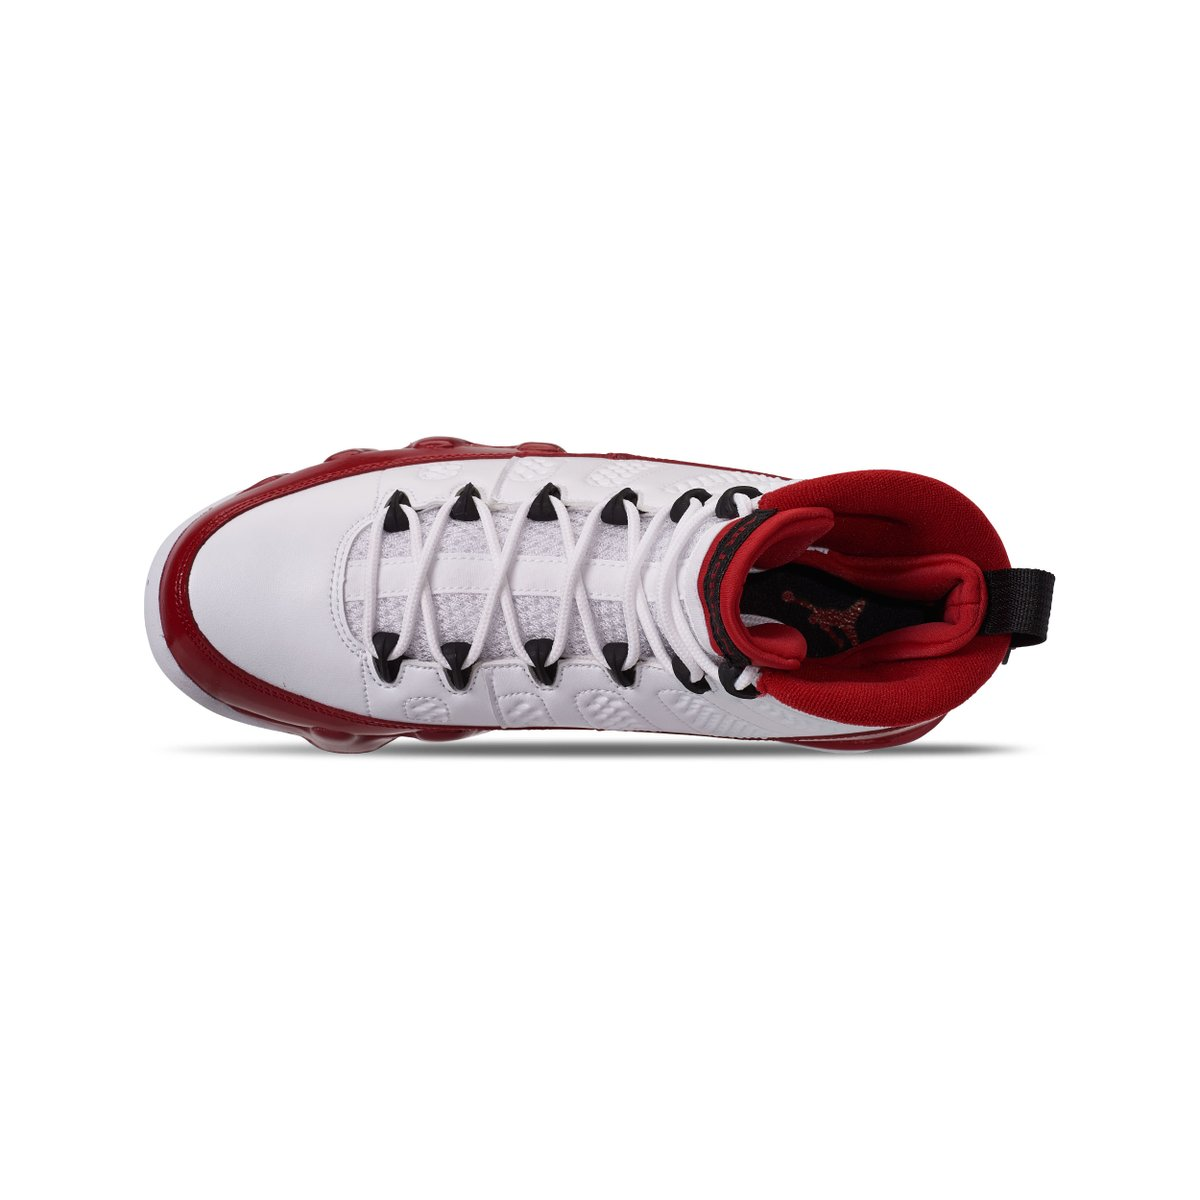 "AJ9,AirAir Jordan 9,AJ9,Gym Re  Air Jordan 9 ""Gym Red"" 最新实物图释出!预计 10 月初发售!"